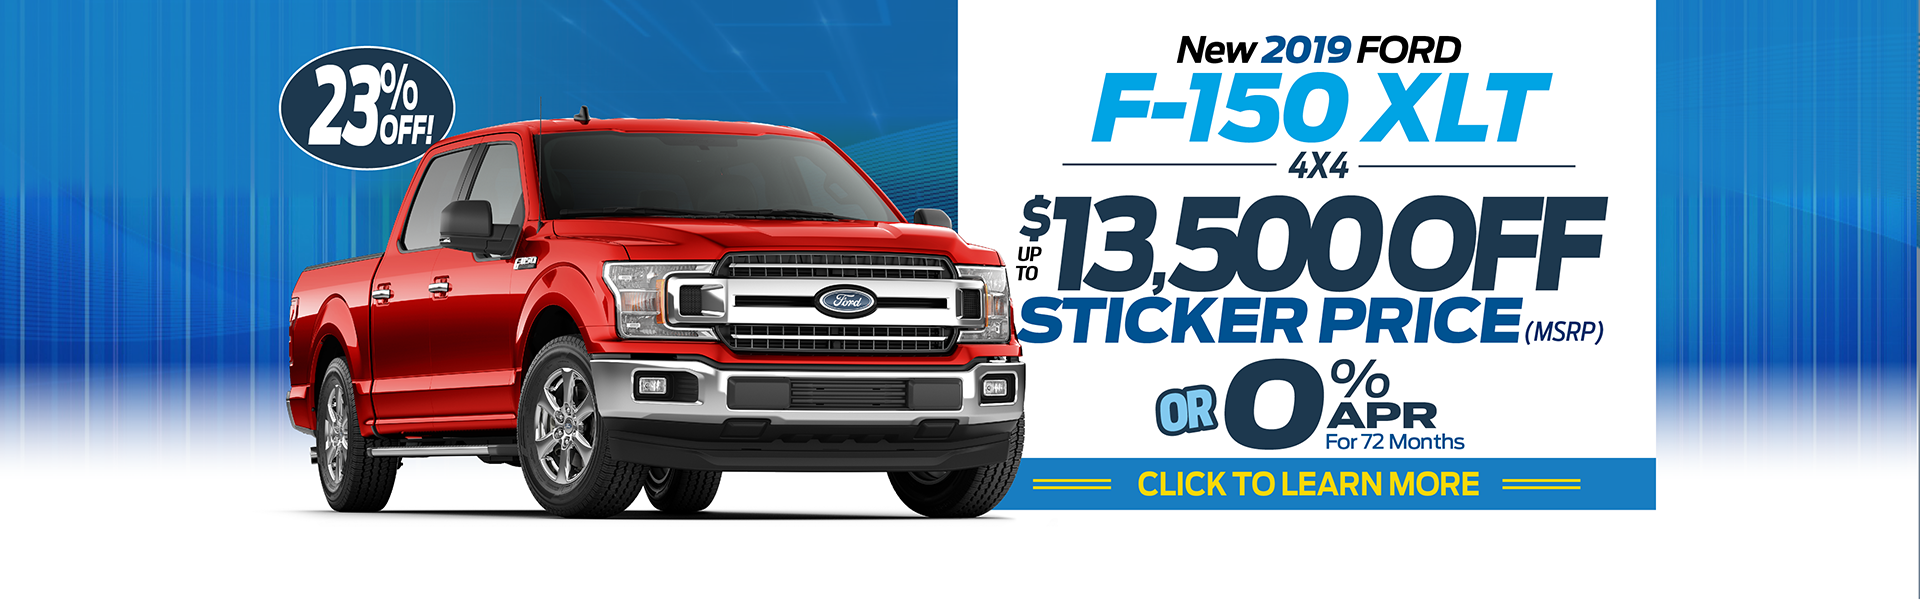 Ford Dealer in Alton, IL | Used Cars Alton | Roberts Motors, Inc